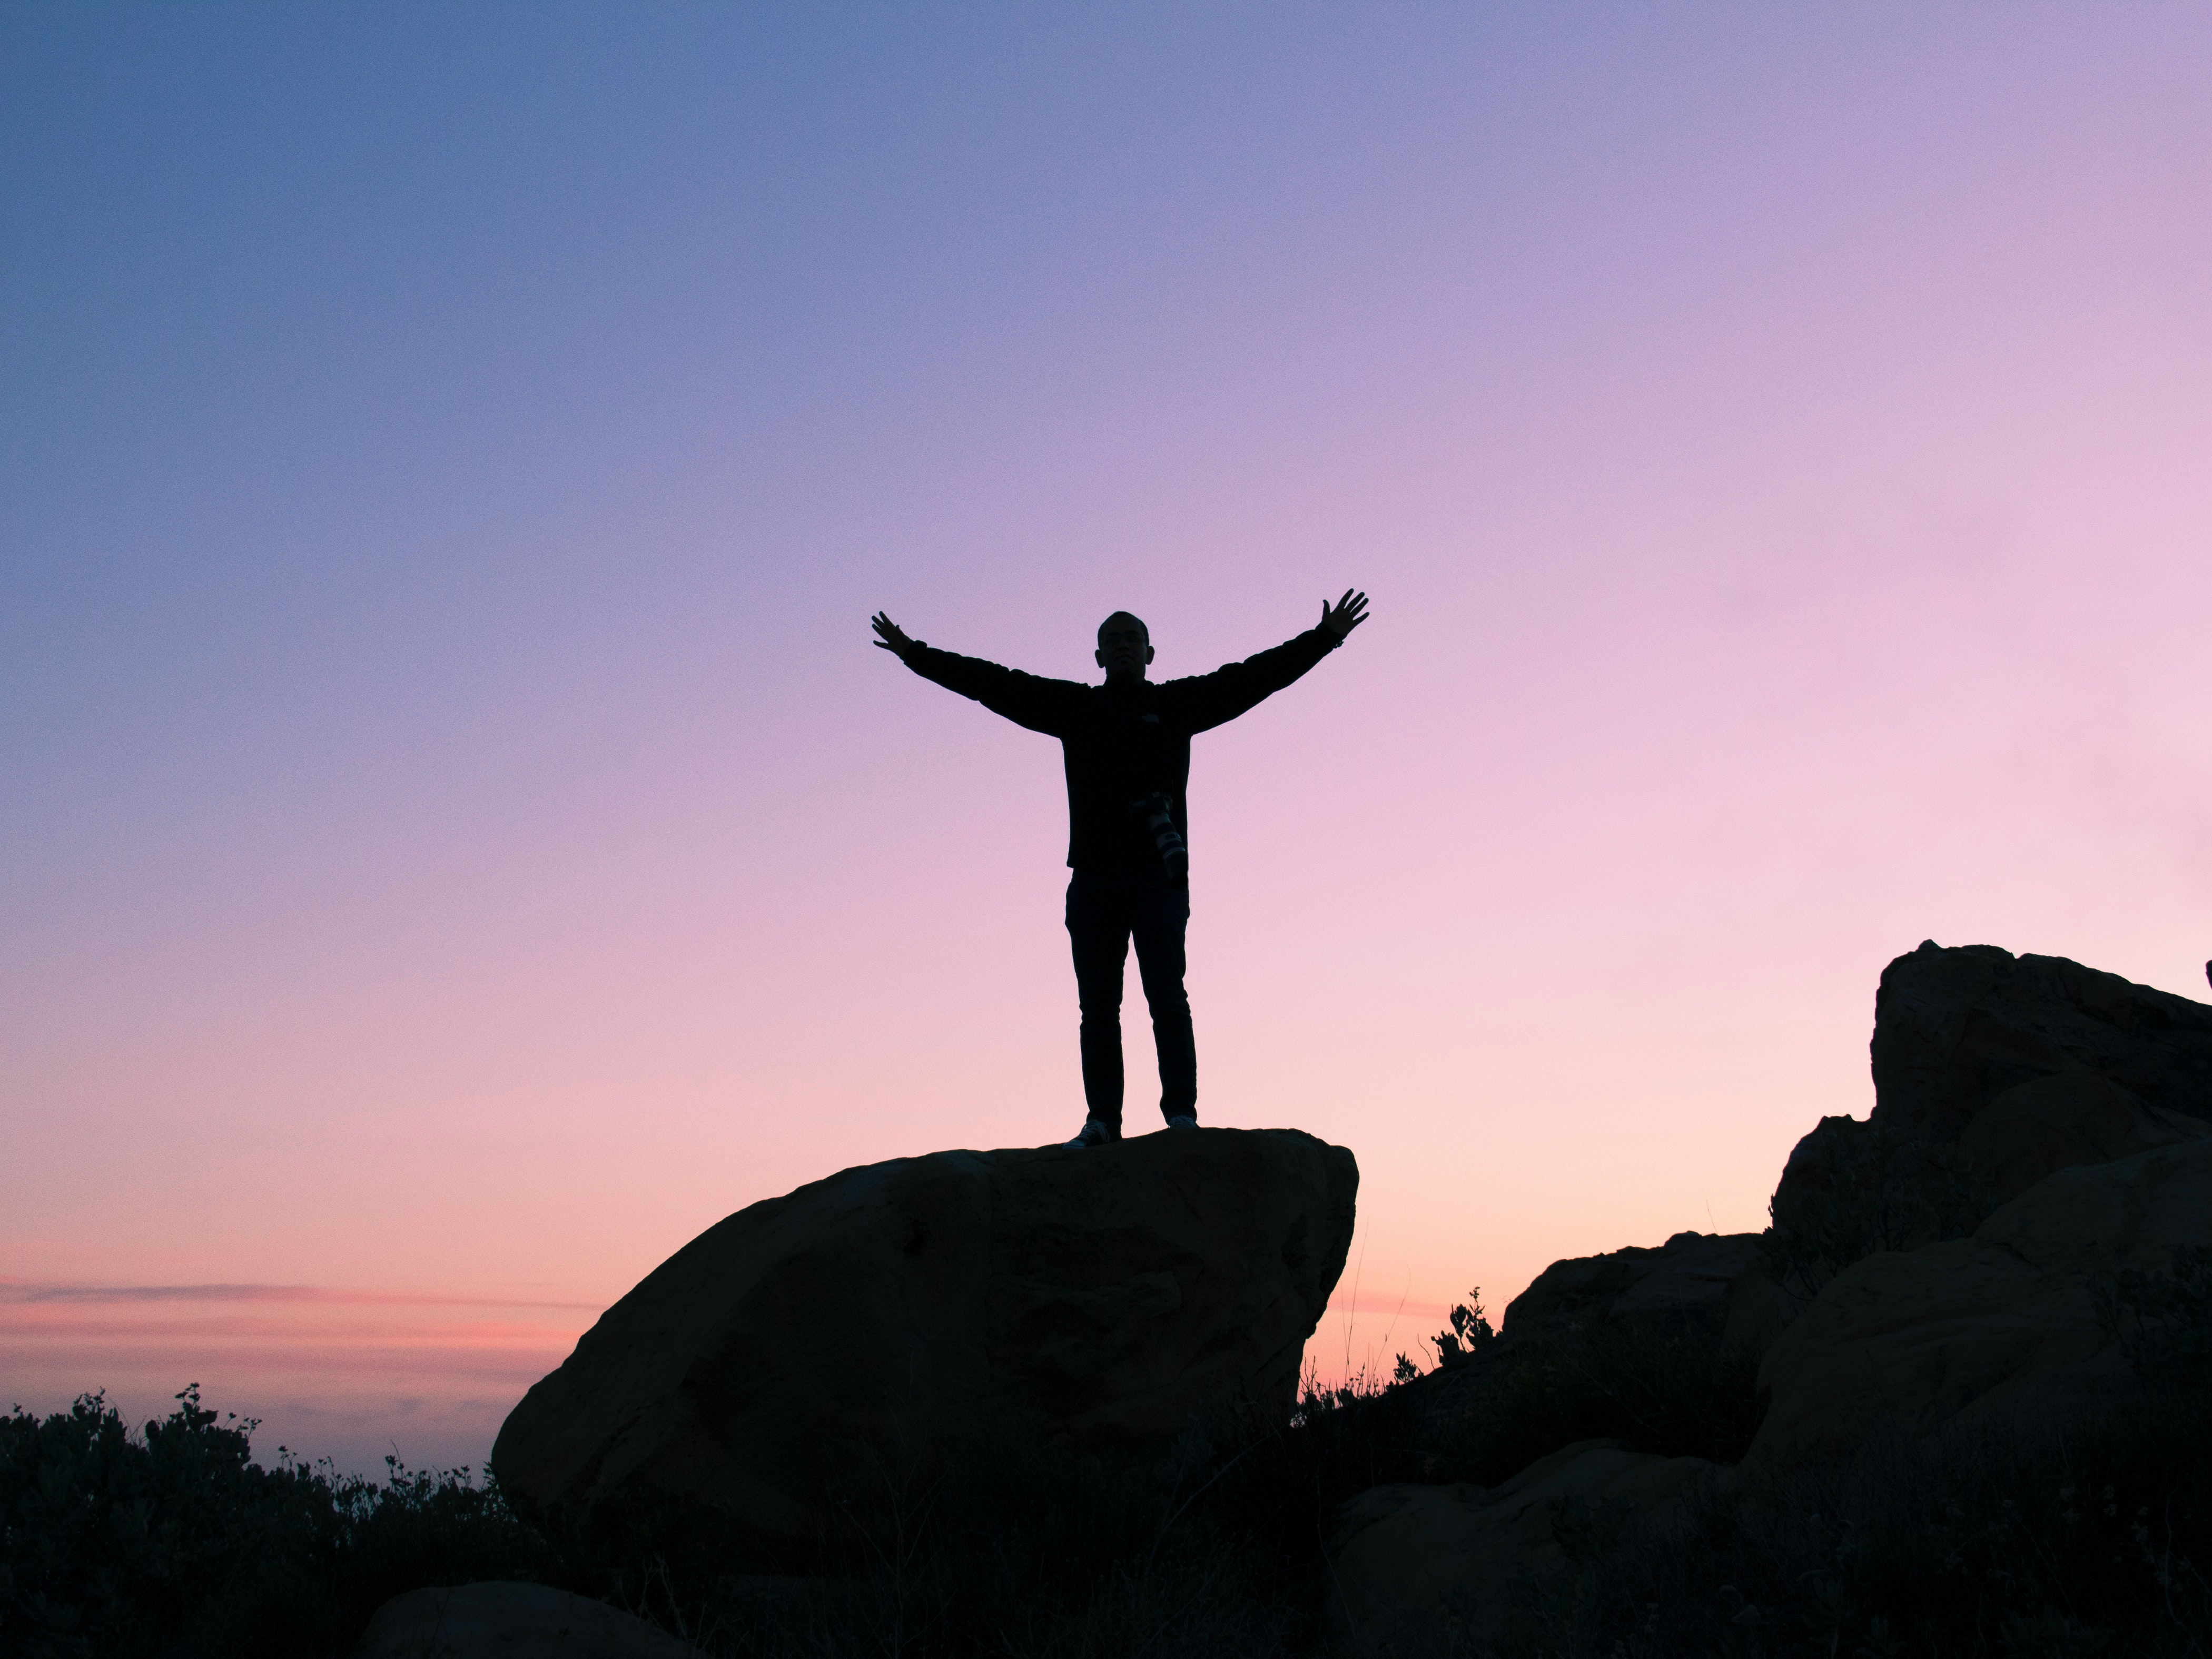 A man stands on a rock with arms outstretched, silhouetted against a sunrise